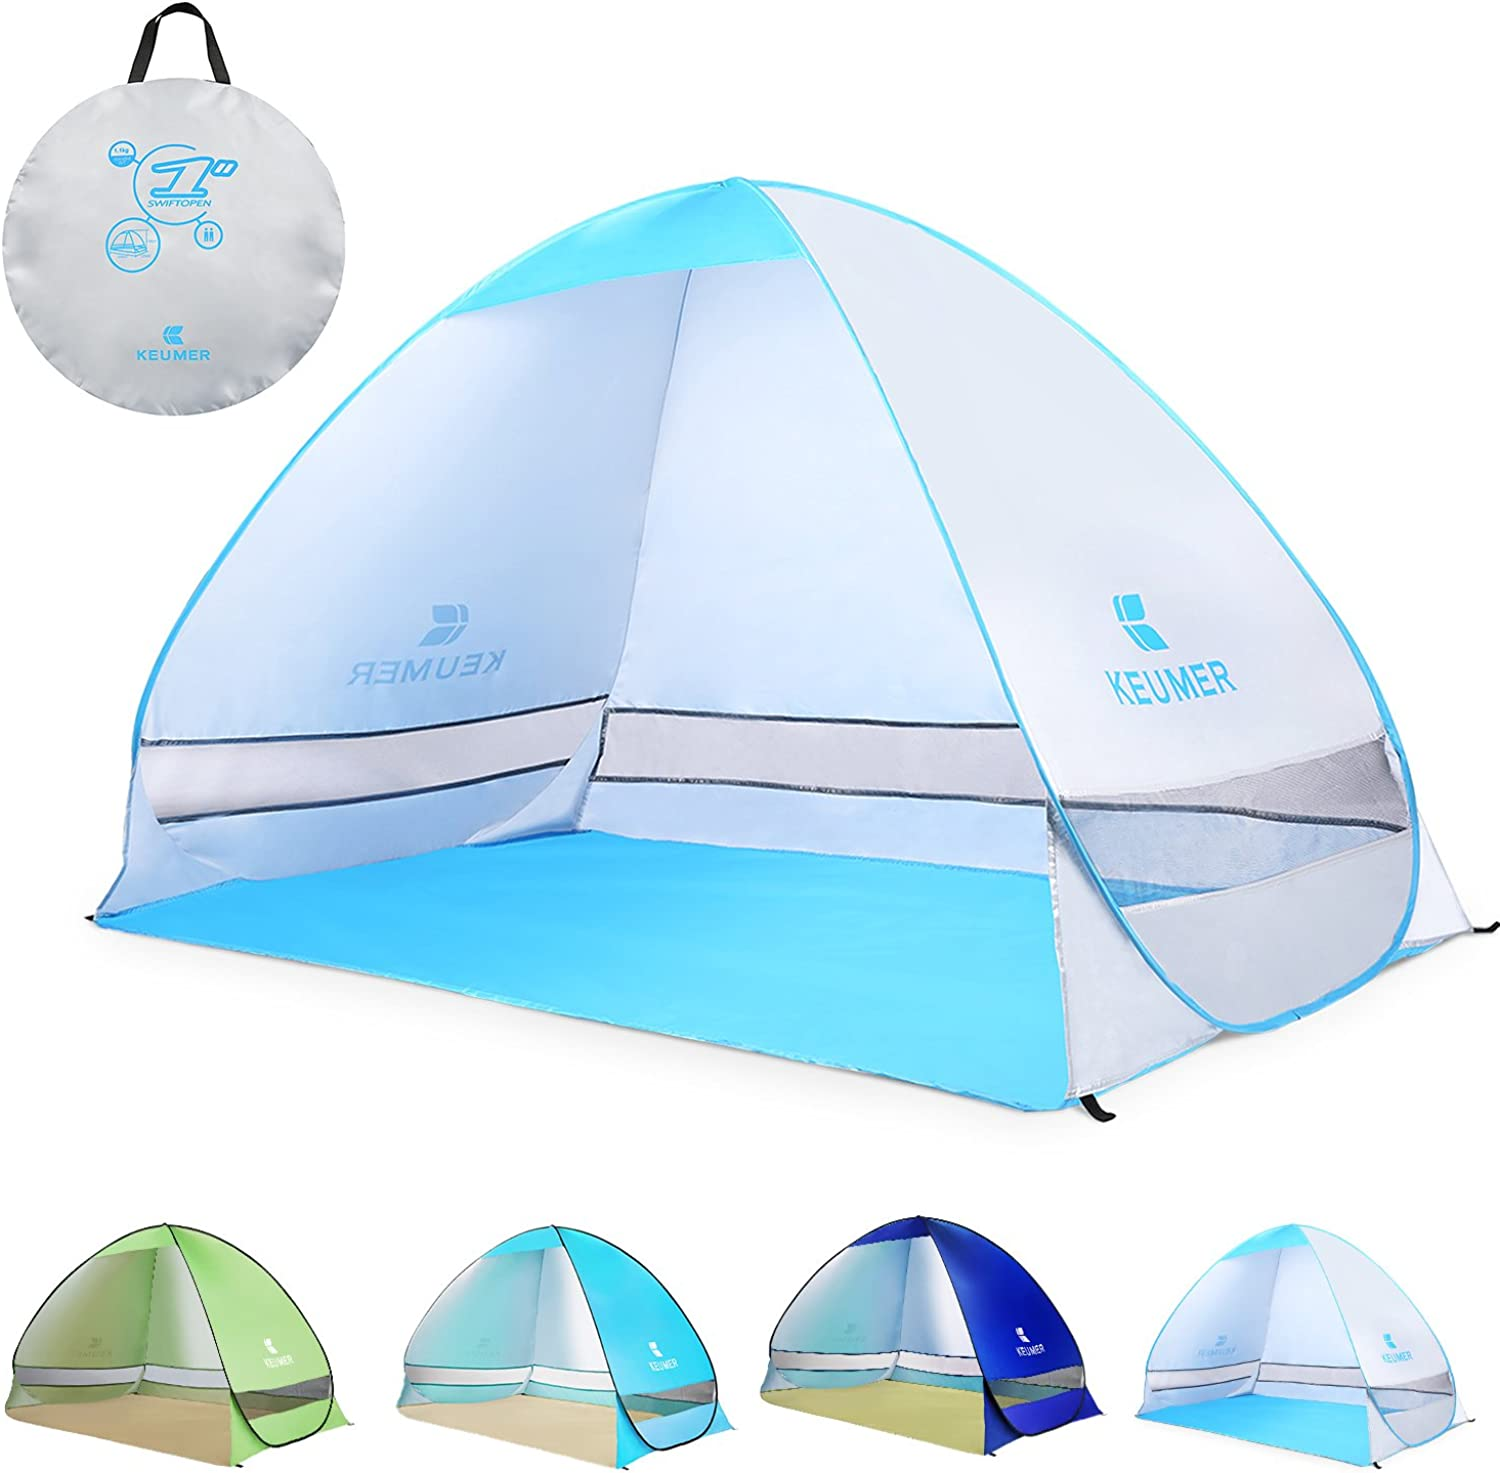 Onetouch tent popup tent for 3 to 4 people for BATTOP sunshade tent 95% UVcut waterproof and breathable camping tent beach tent outdoors compact instant open with a storage bag (Silver)